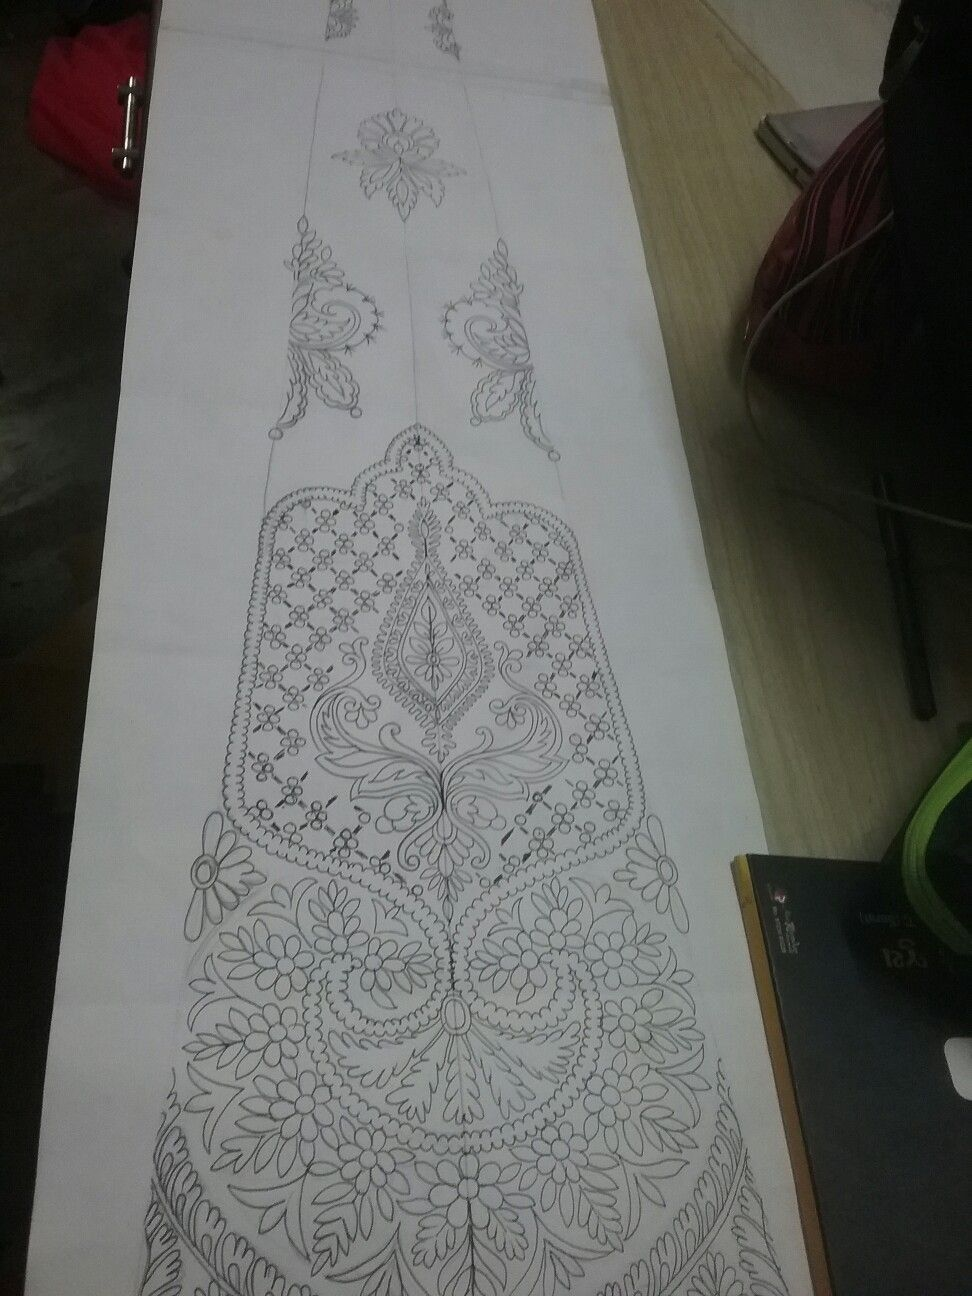 Pin by wasim khan on embroidry sketch pinterest embroidery blouse patterns embroidery patterns hand embroidery embroidery stitches pattern draping pattern books yellow lehenga lahenga floral design bankloansurffo Image collections